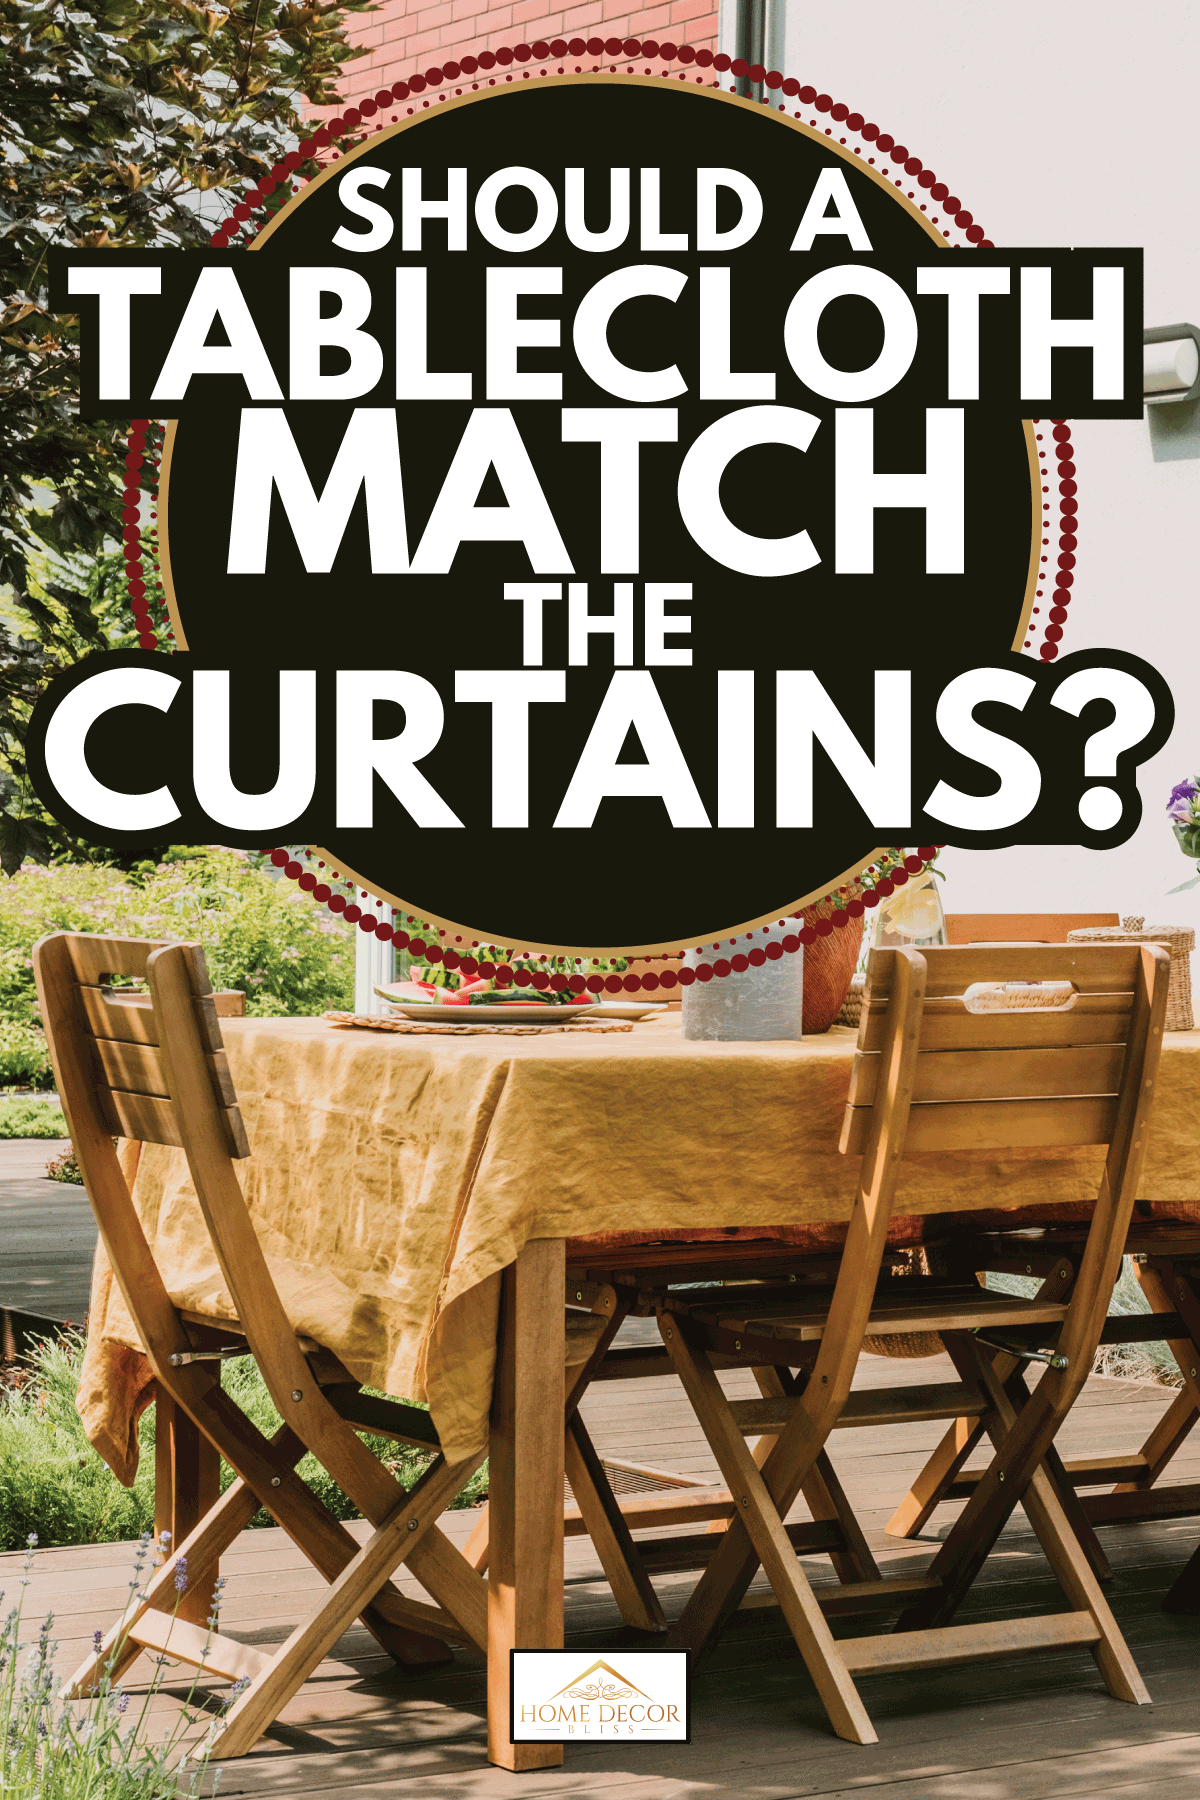 Dining table covered with orange tablecloth standing on wooden terrace in green garden. Should A Tablecloth Match The Curtains